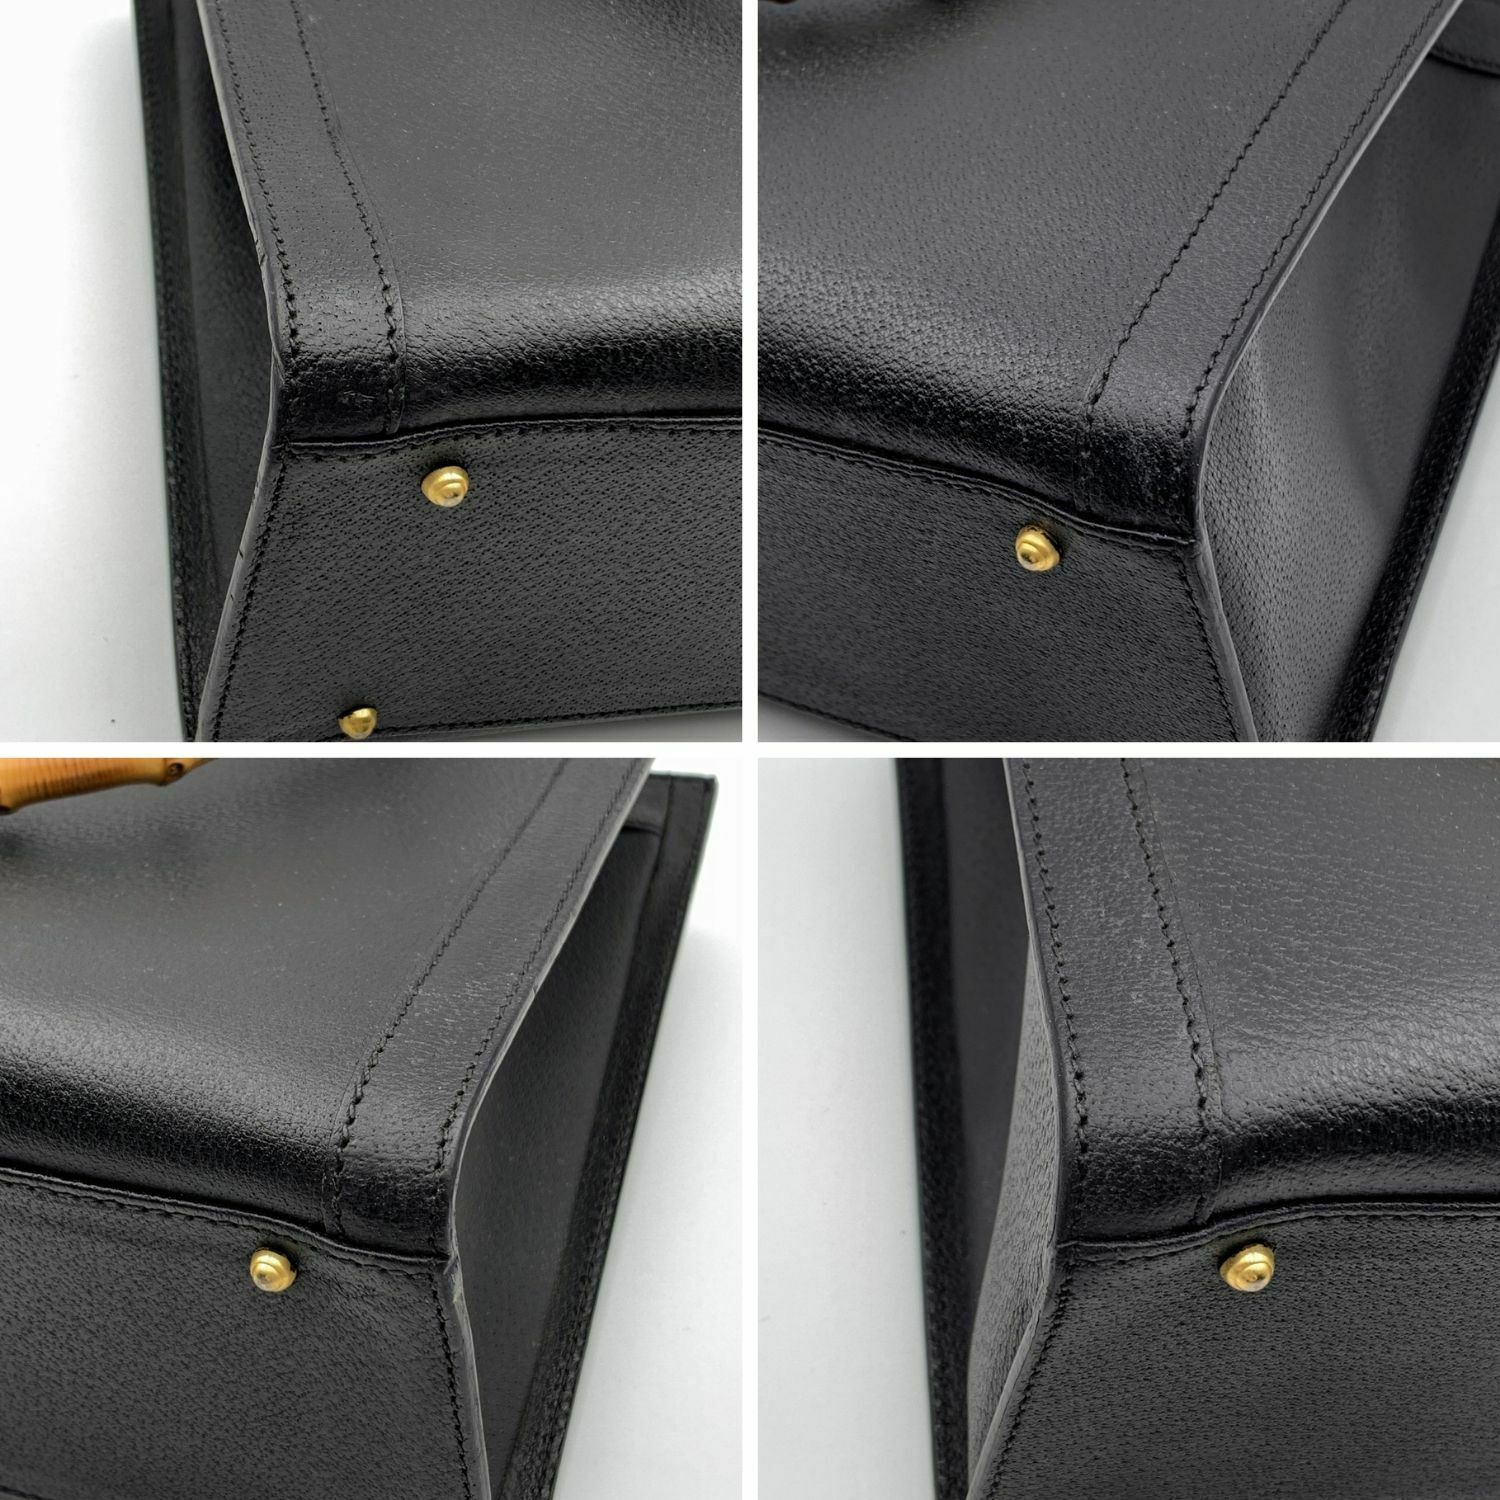 Authentic Gucci Vintage Black Leather Bamboo Prin… - image 7